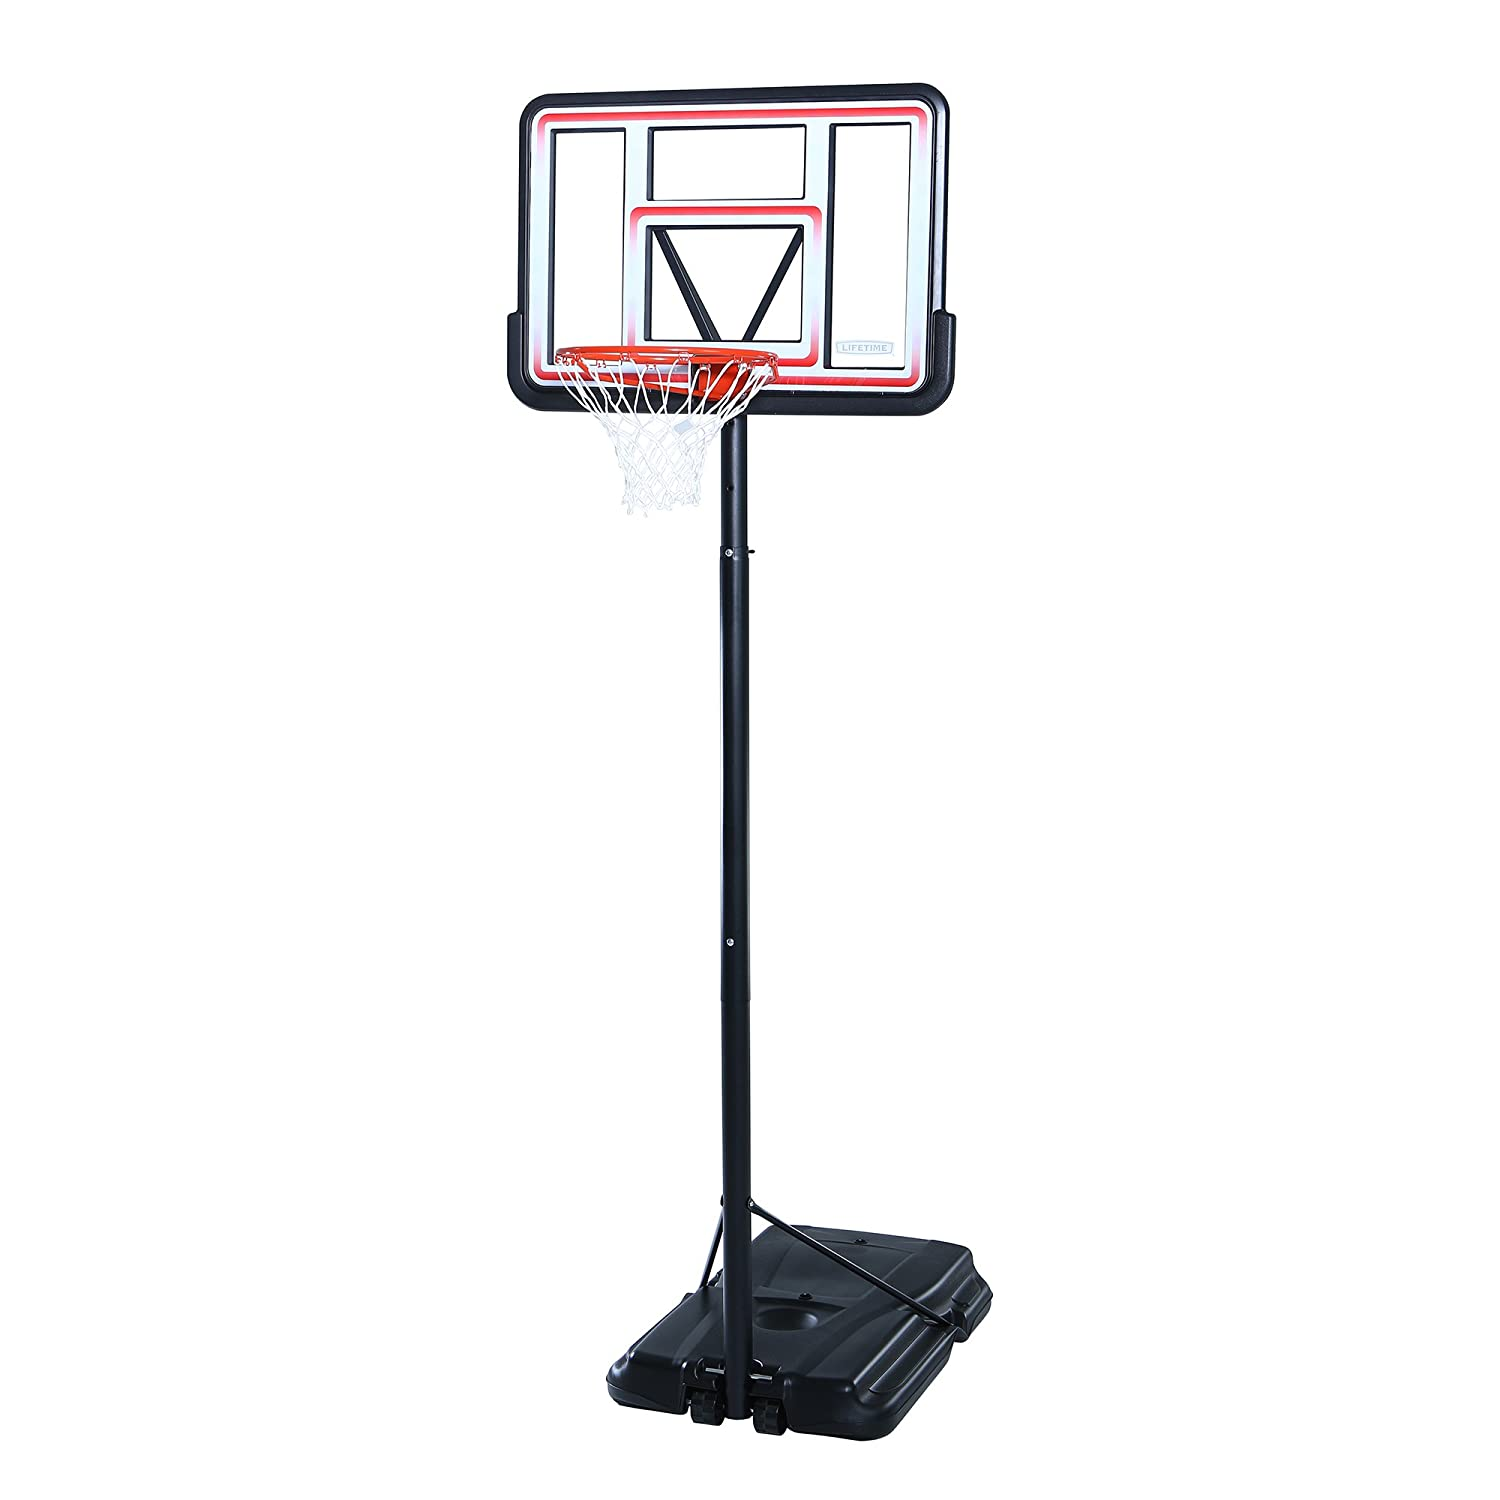 Top 8 Best Basketball Hoop for Kids Reviews in 2020 6